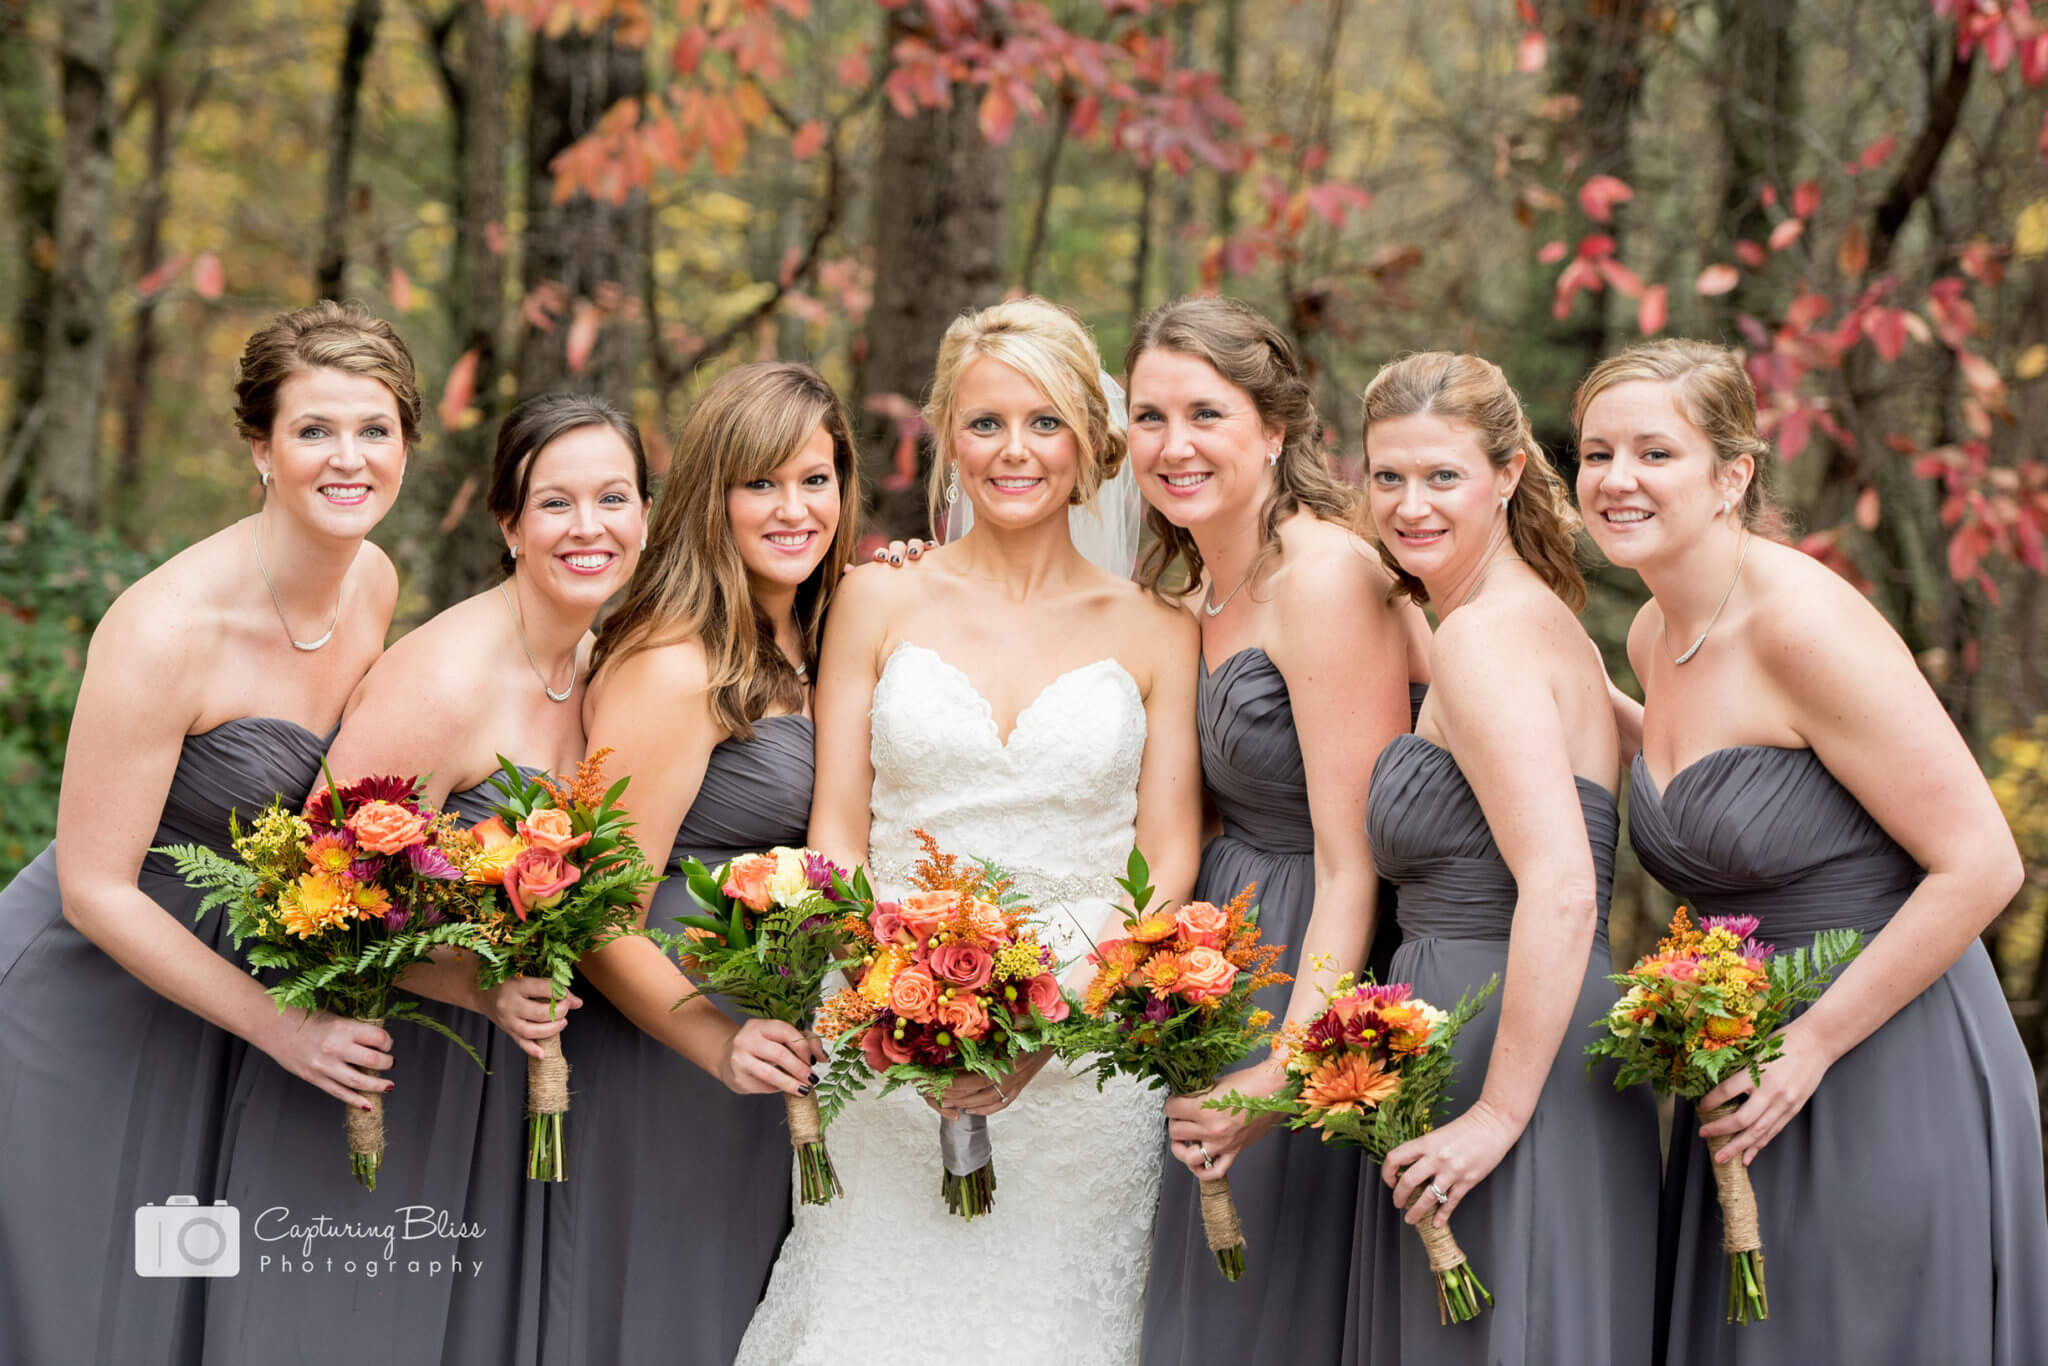 Capturing Bliss Photography Jamison Wedding 17